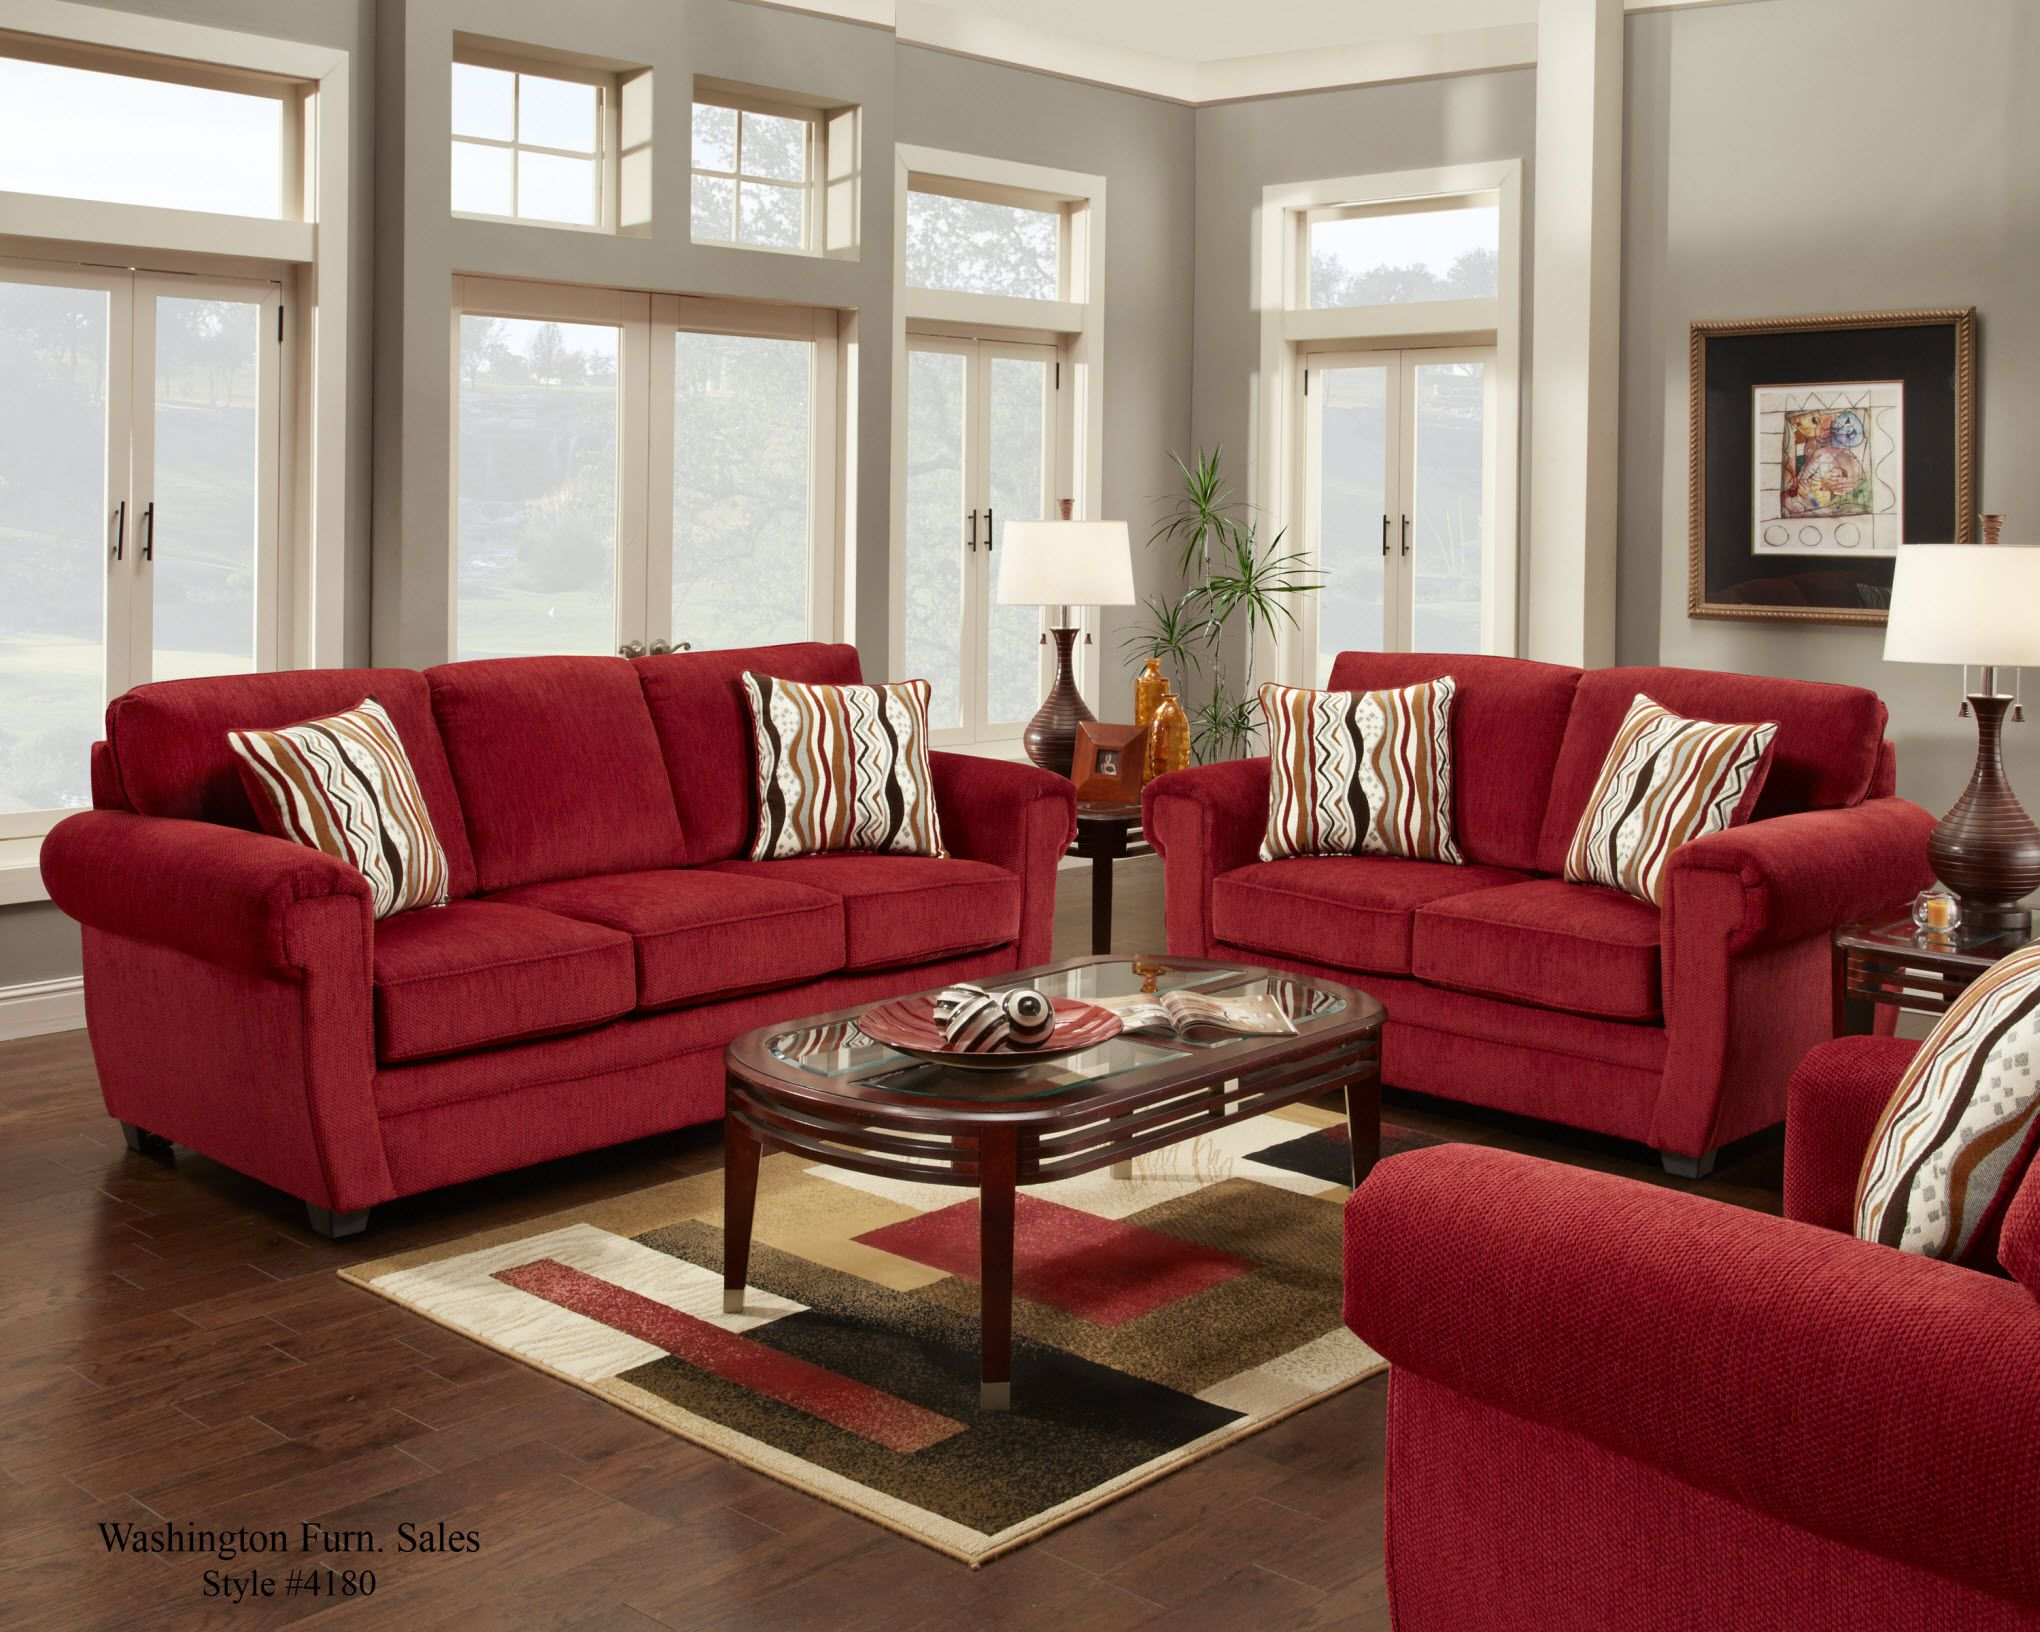 4180 Washington Samson Red Sofa And Loveseat @ Www.furnitureurban.com